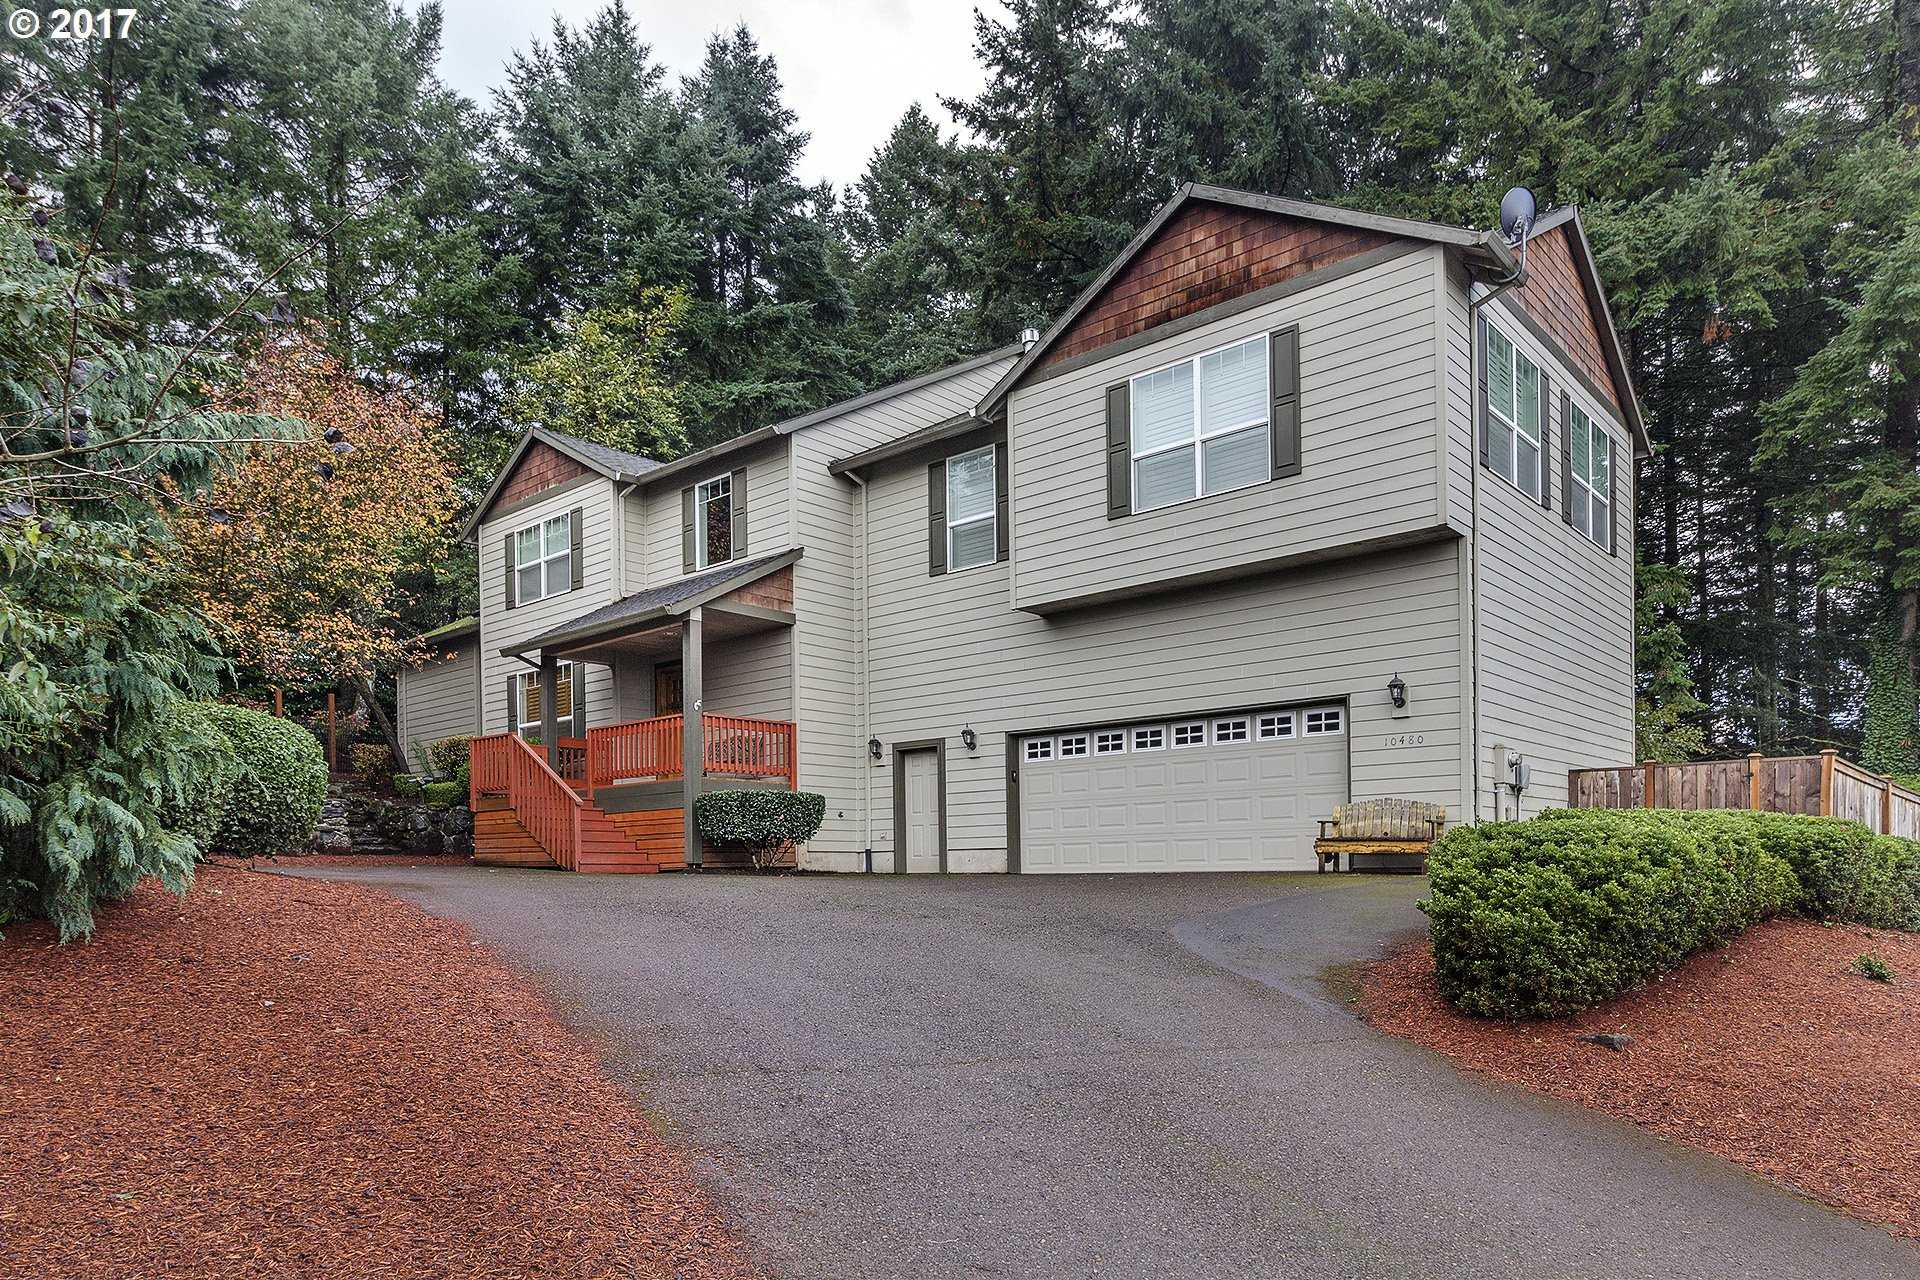 $550,000 - 5Br/4Ba -  for Sale in Brie Woods, Tigard